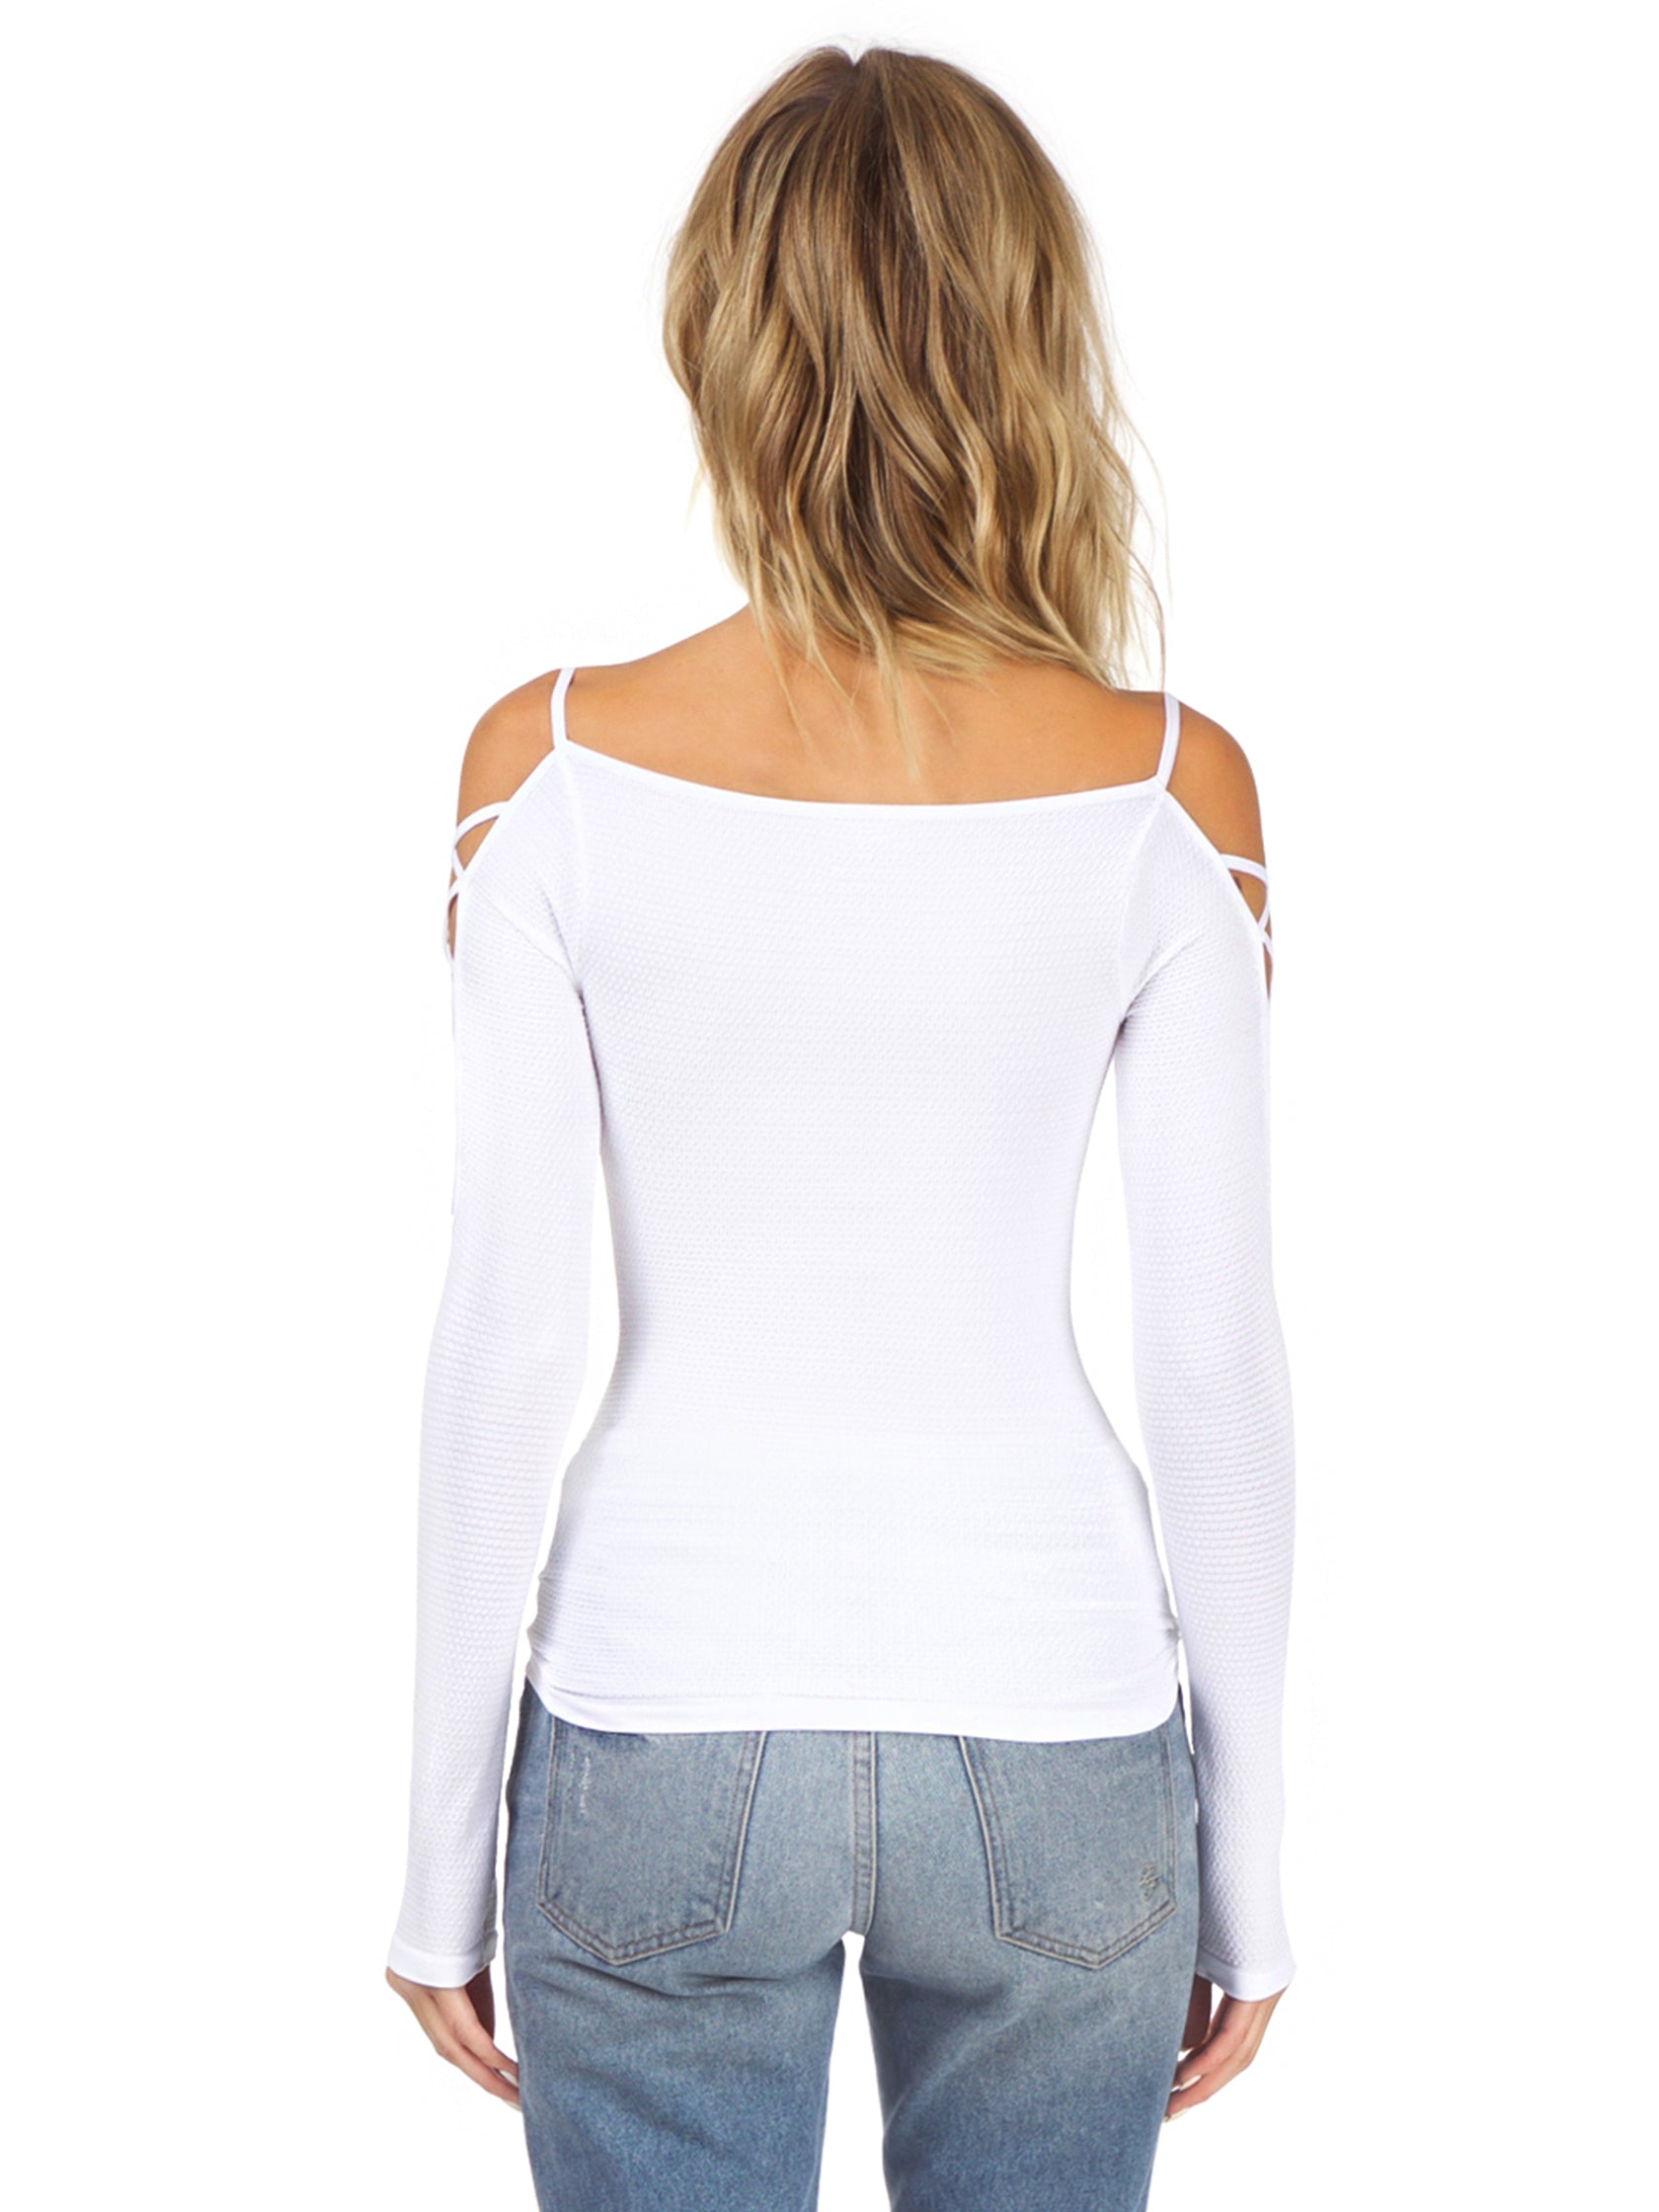 Women wearing a top rental from Free People called Cross Shoulder Top